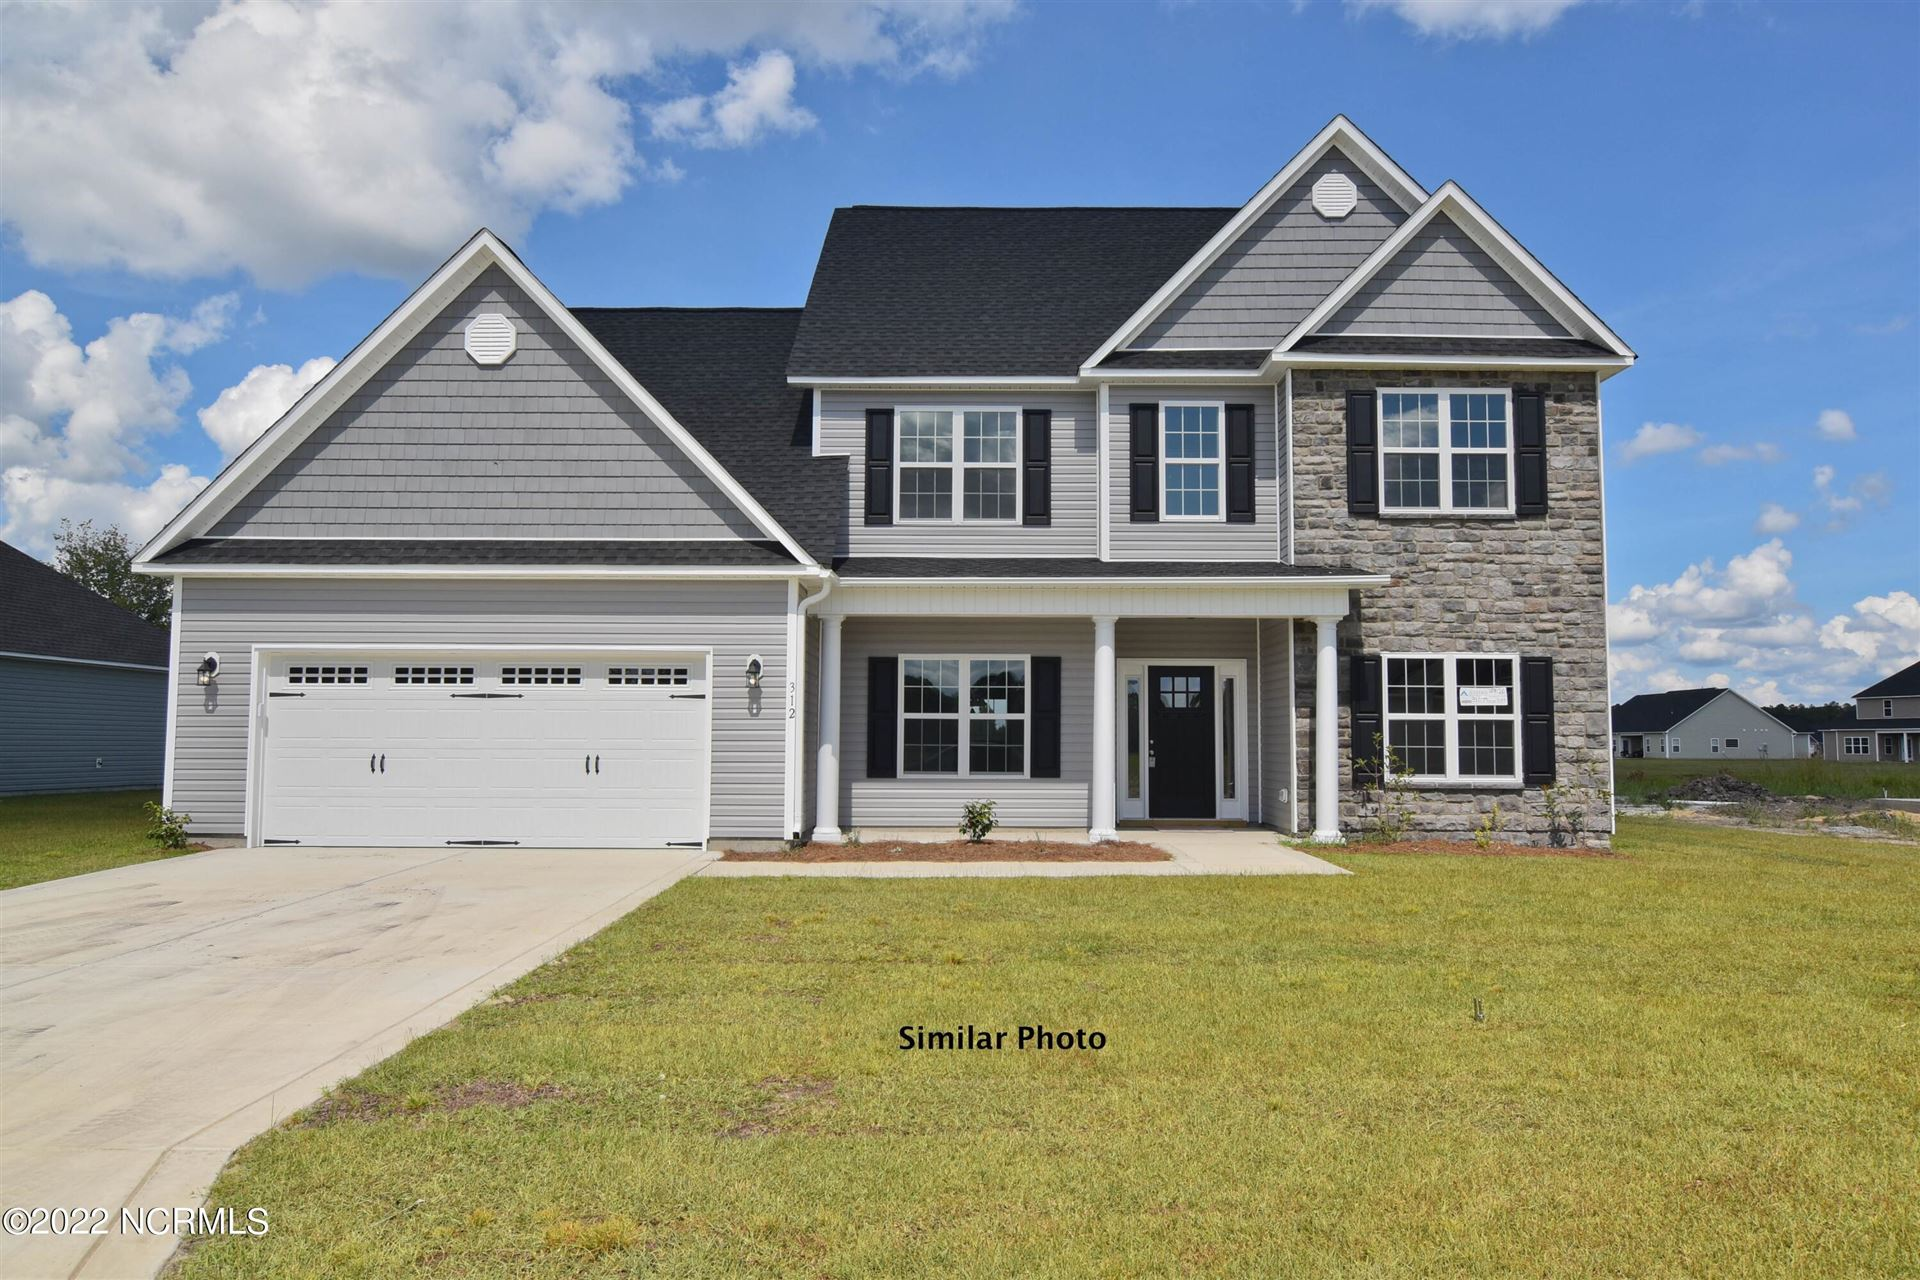 Photo of 414 Water Wagon Trail, Jacksonville, NC 28546 (MLS # 100289625)